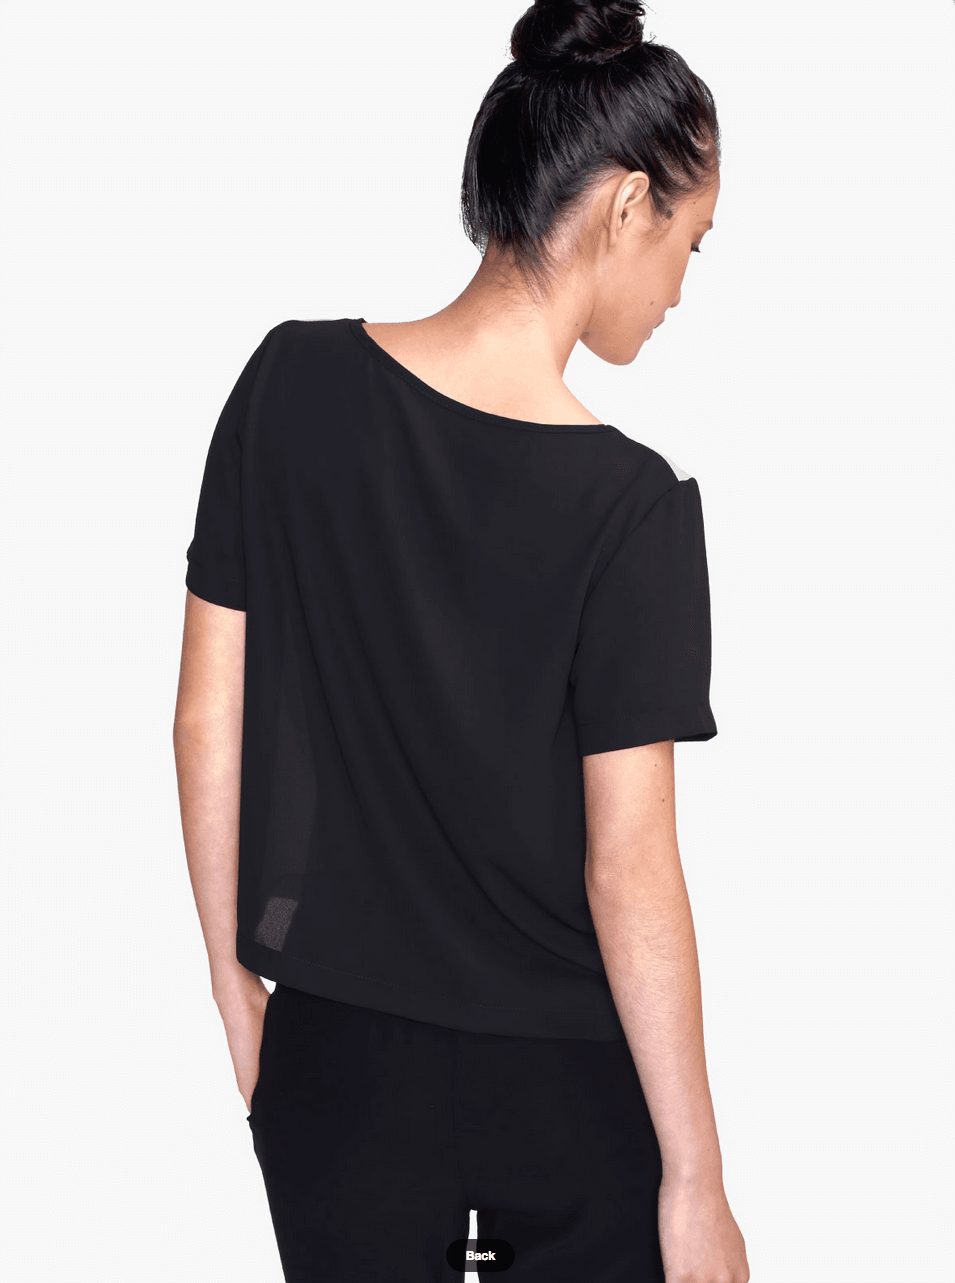 Apples Chiffon Top - Women Blouse - Modern Clothing-TheGretest